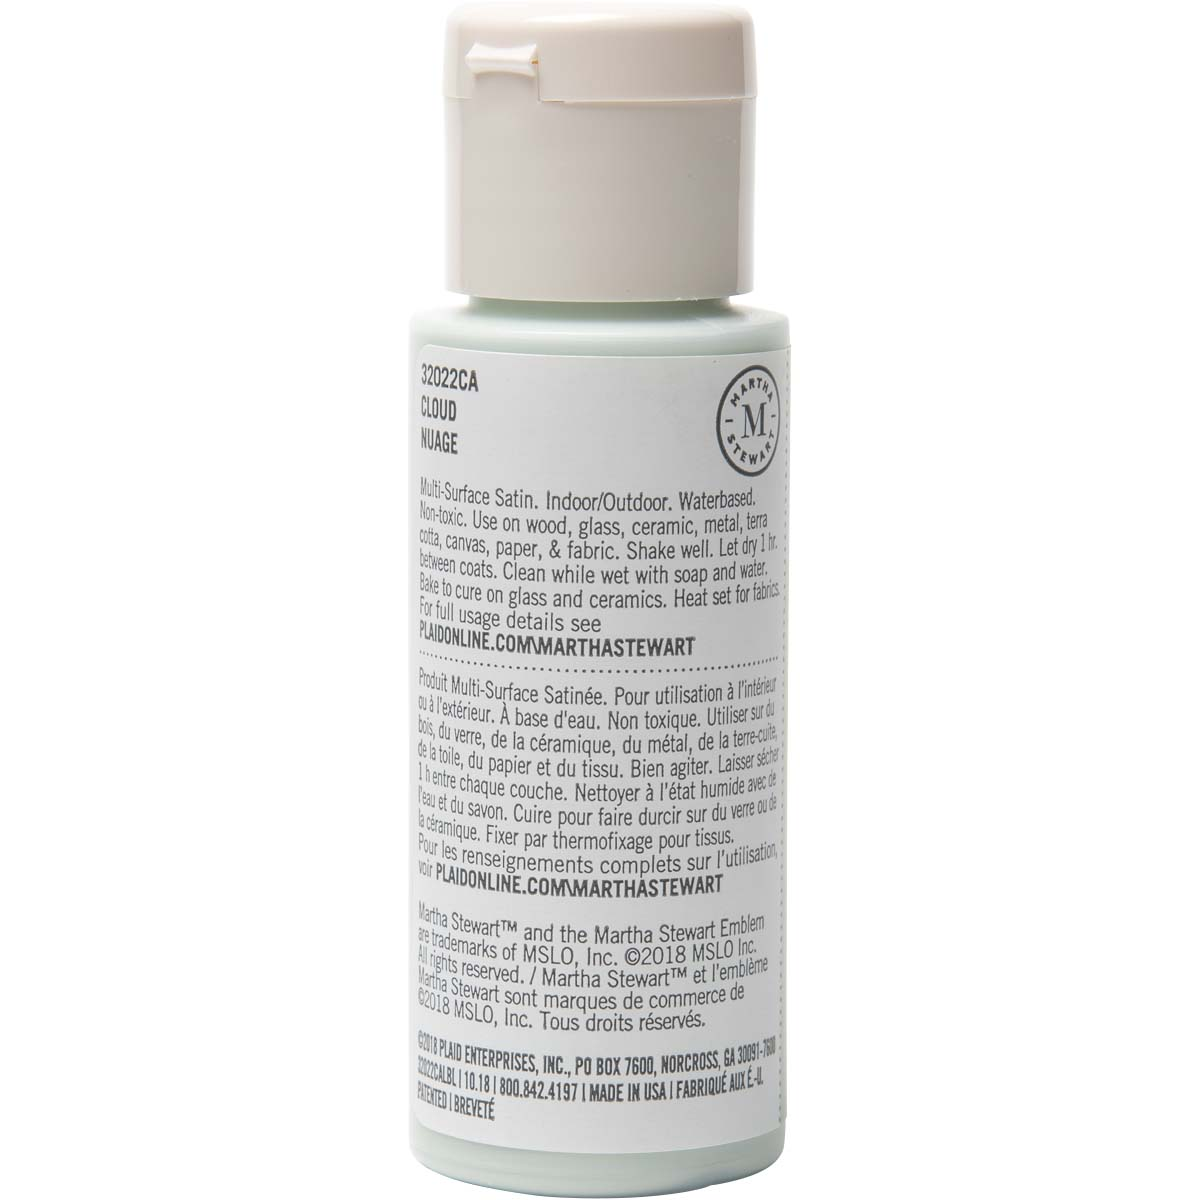 Martha Stewart ® Multi-Surface Satin Acrylic Craft Paint - Cloud, 2 oz.